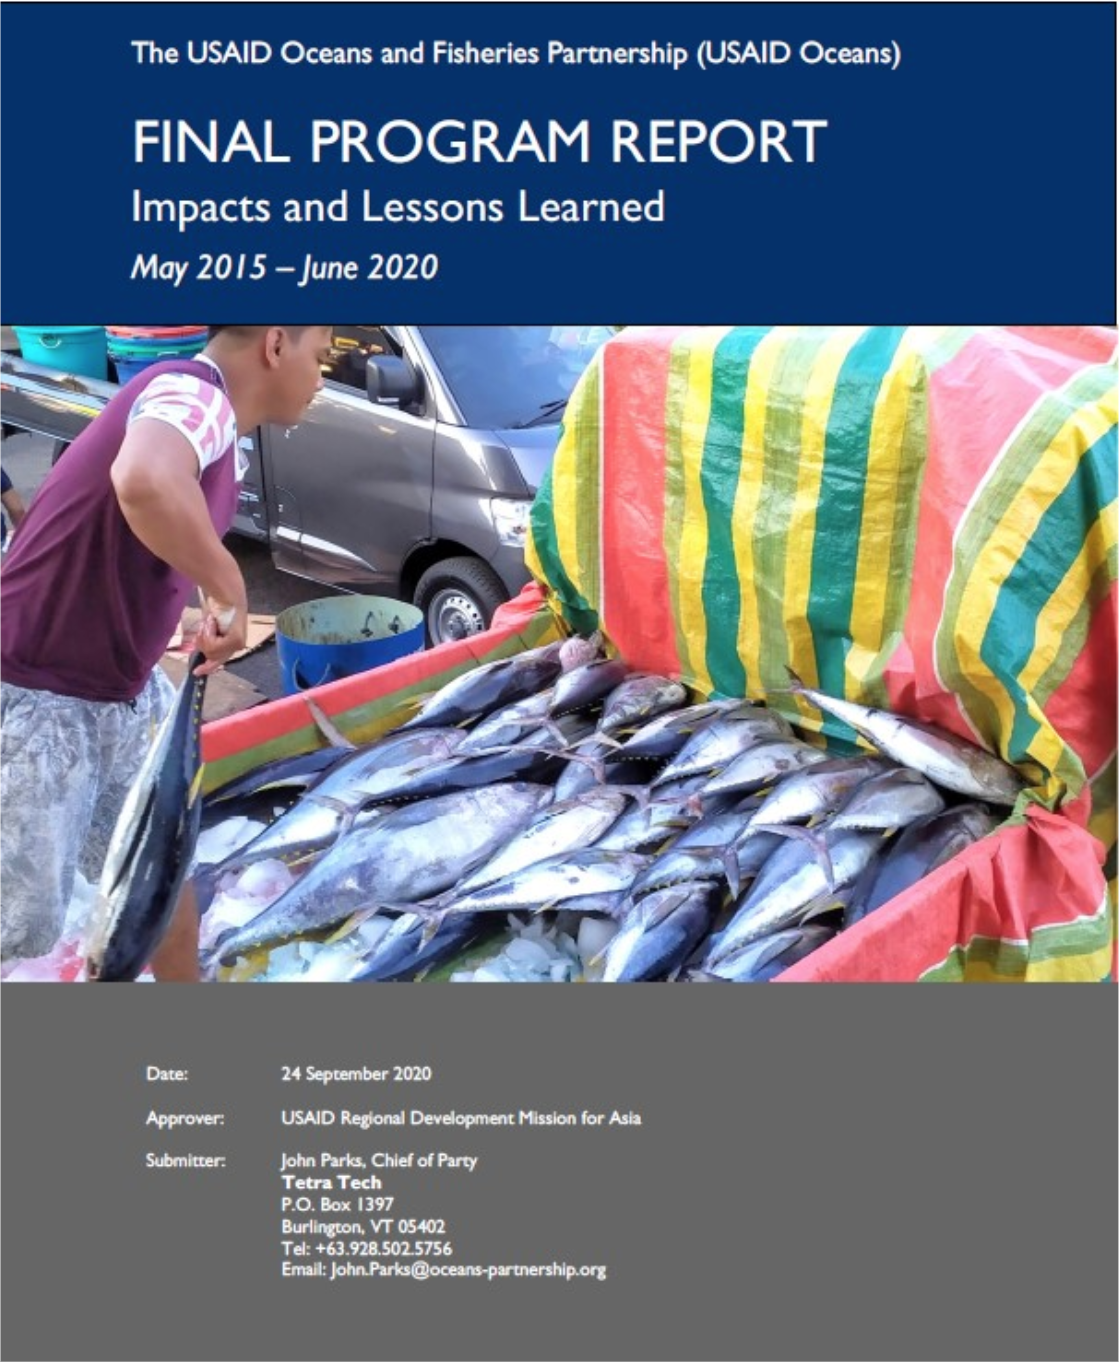 Final Program Report: Impacts and Lessons Learned